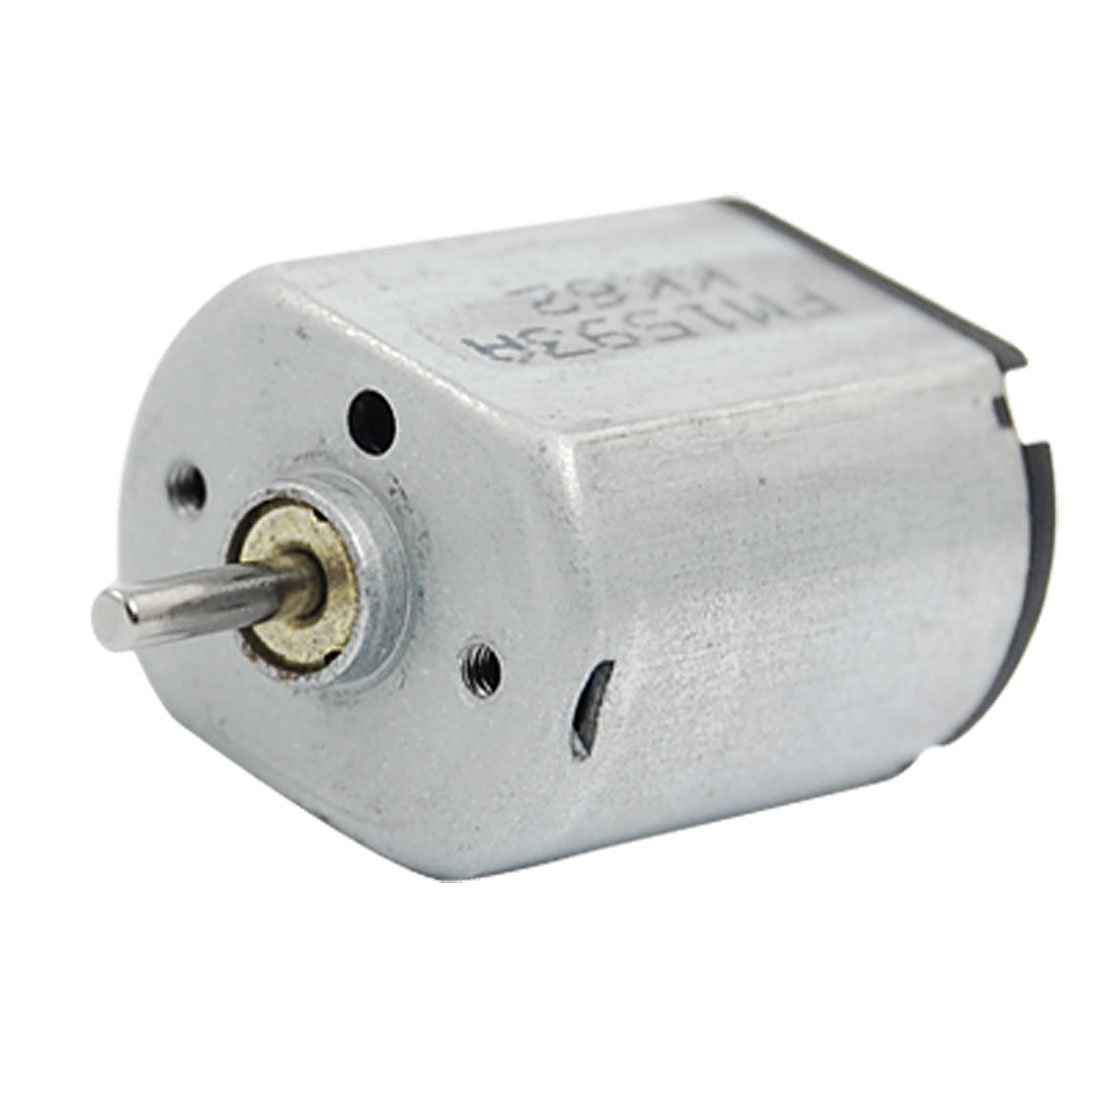 DC 6V 8000RPM 0.05A 1.3mm Shaft Mini Electric Motor for DIY Toys